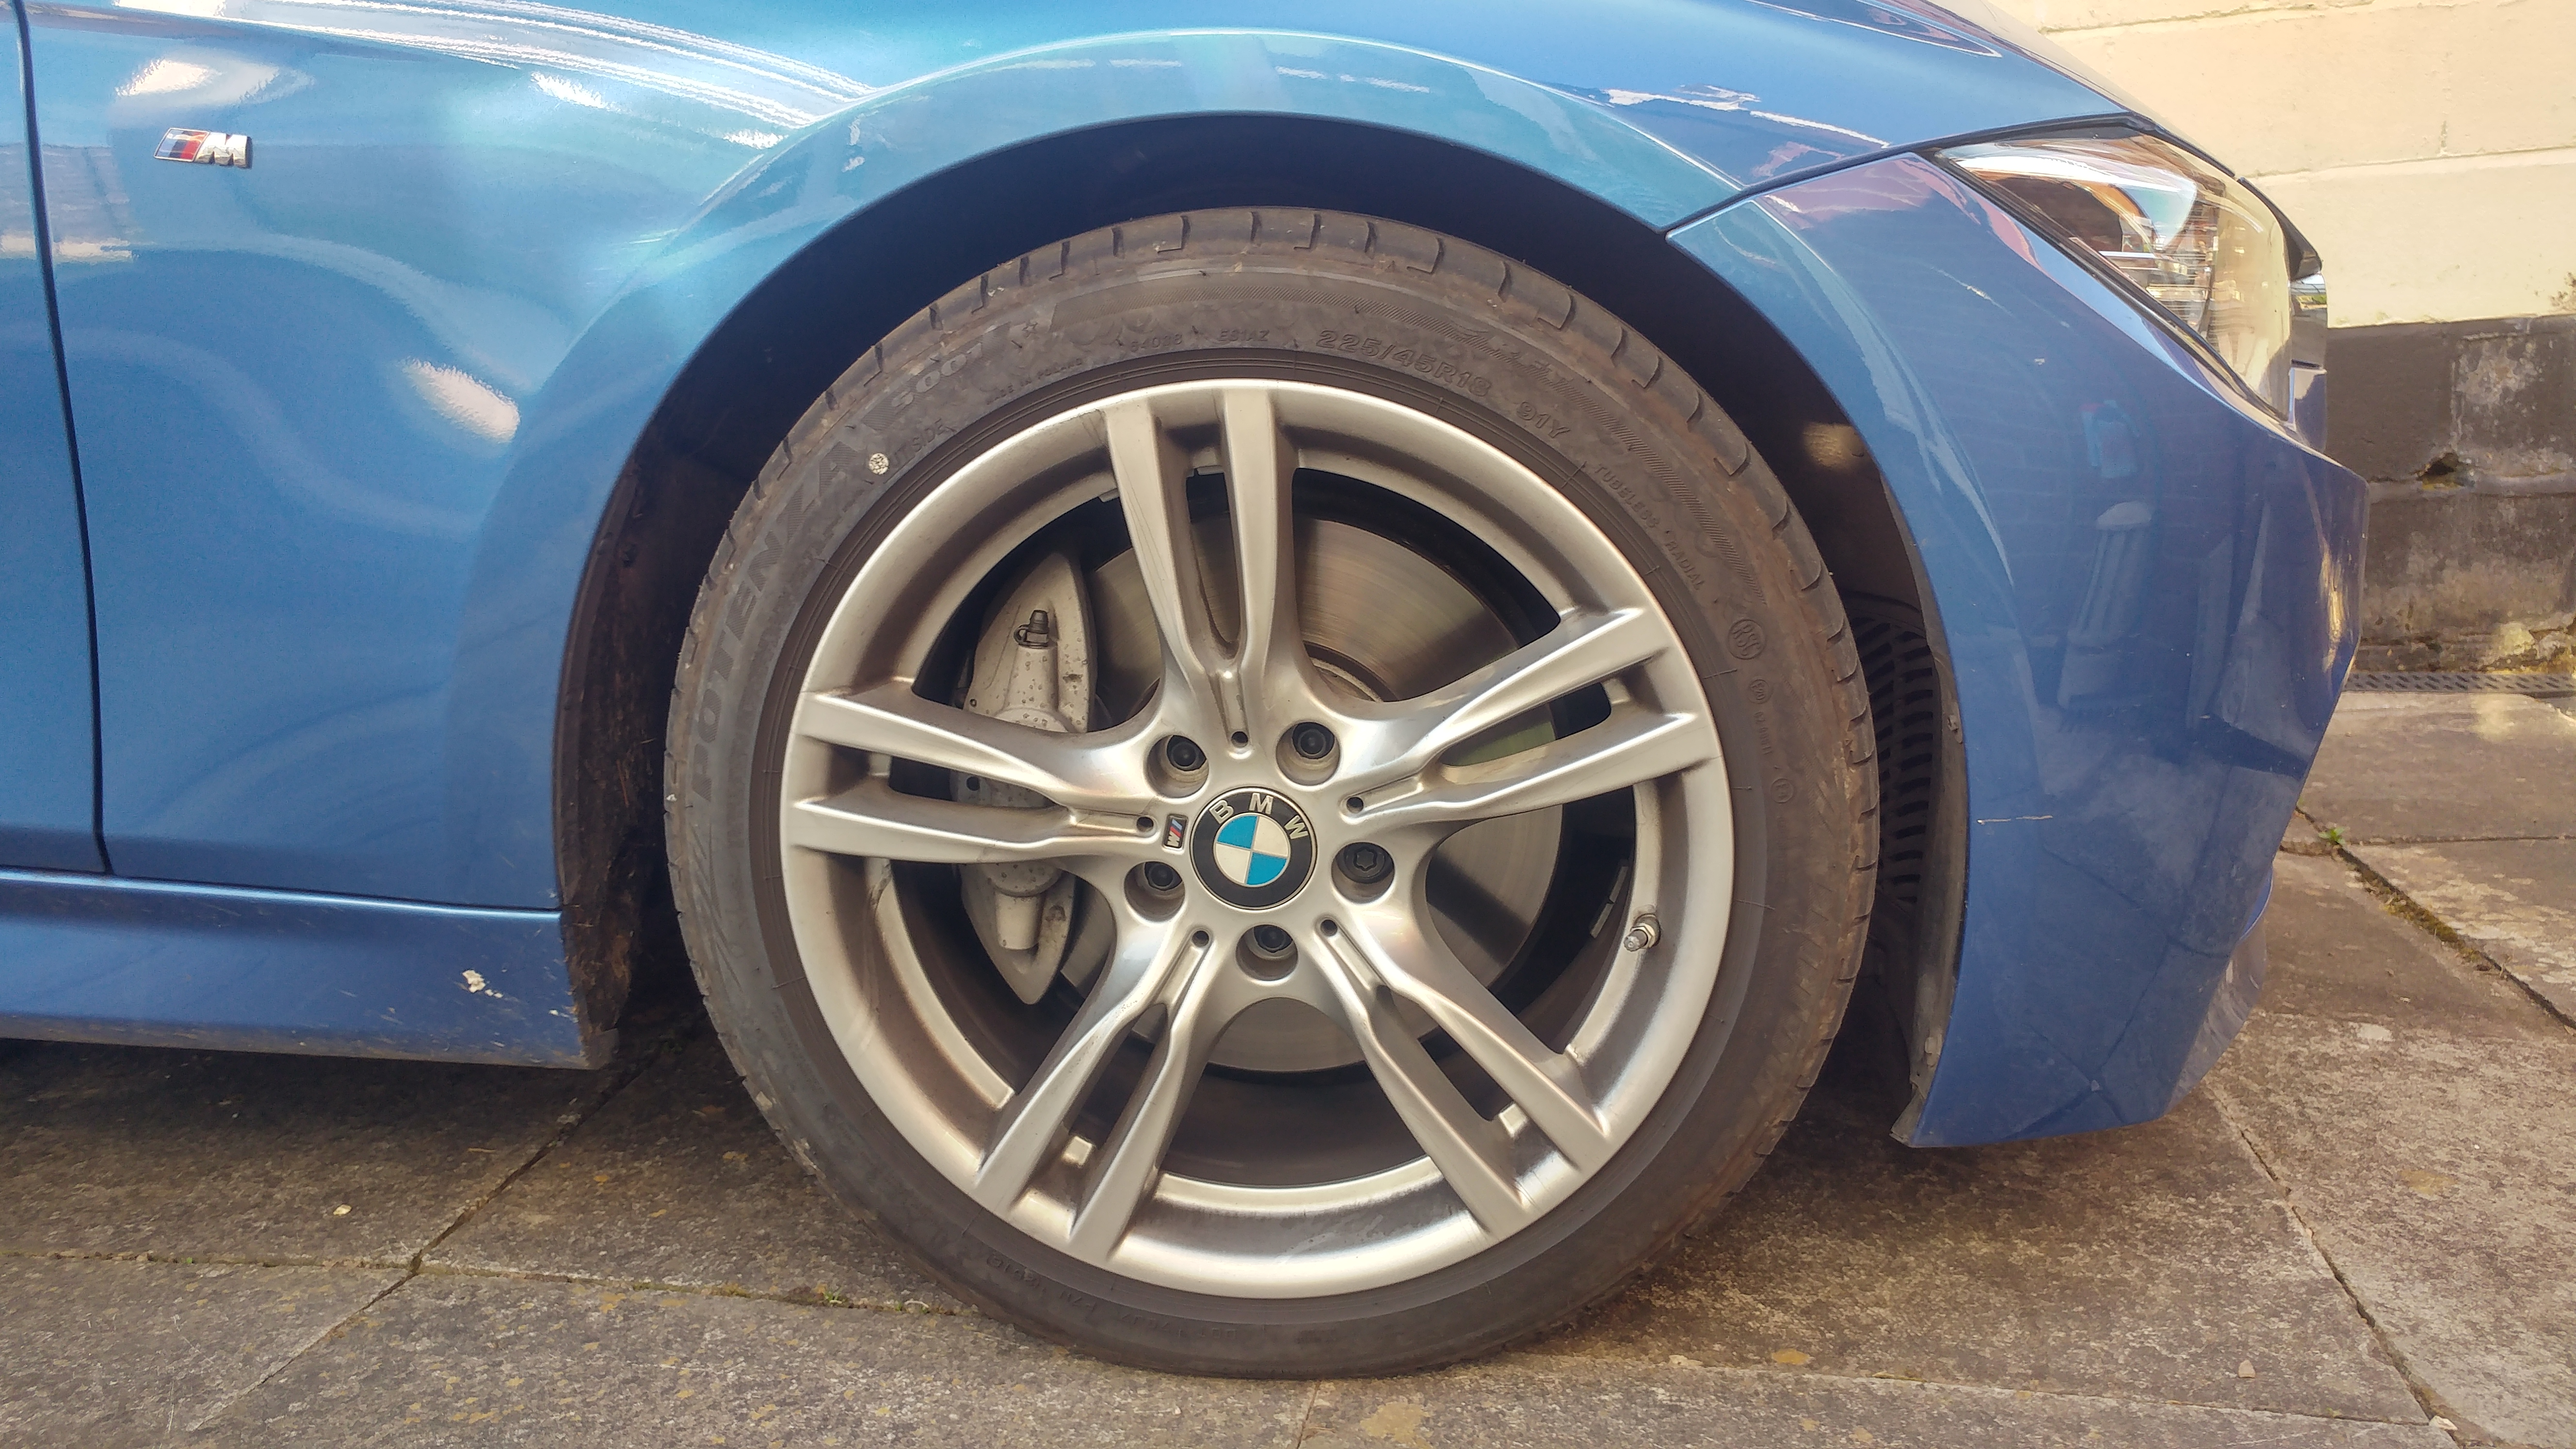 BMW 335d xDrive M-sport review - Mike Porter's - mykp co uk